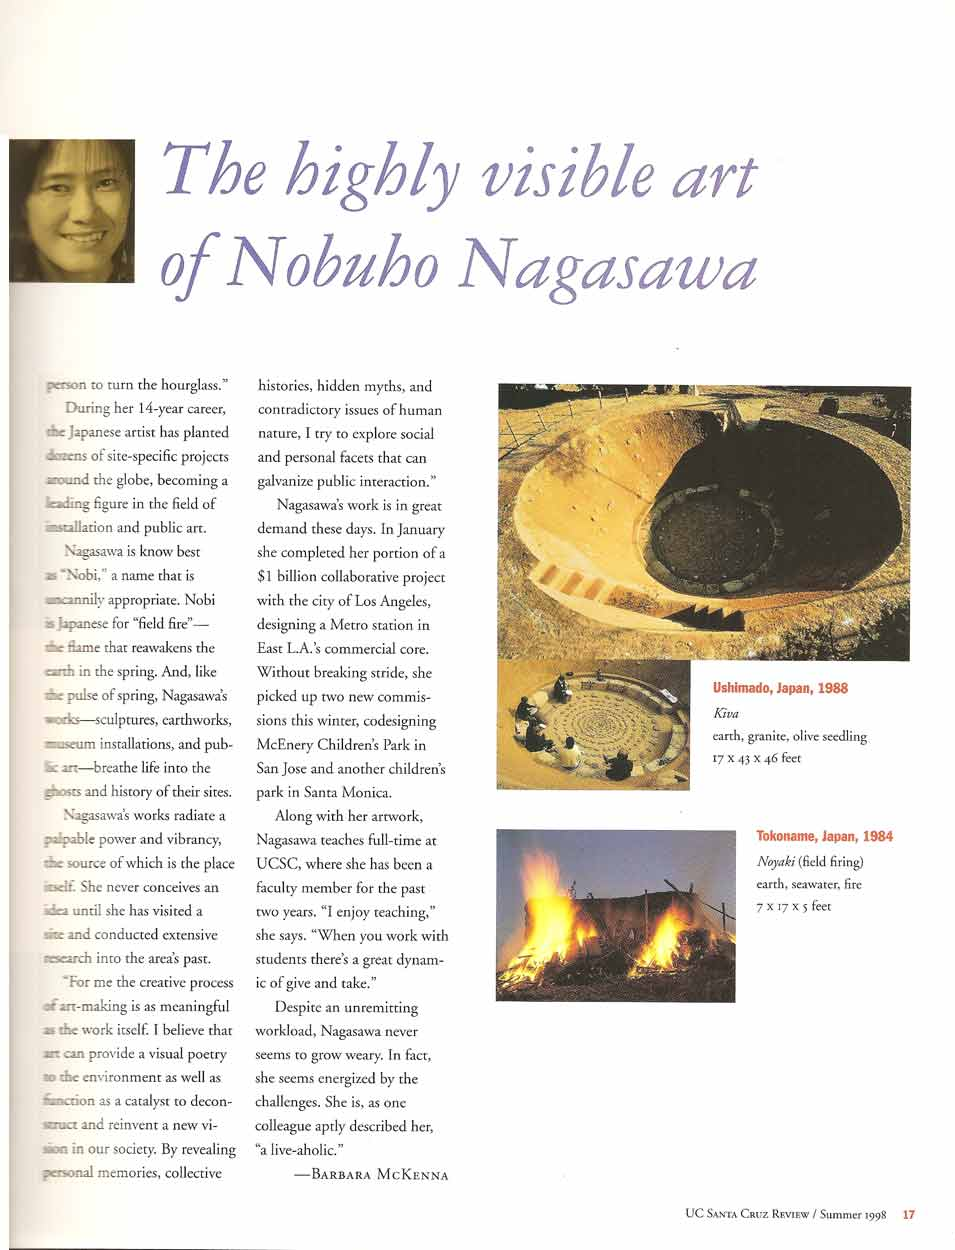 Site Specific: The Highly Visibe Art of Nobuho Nagasawa: pg 2